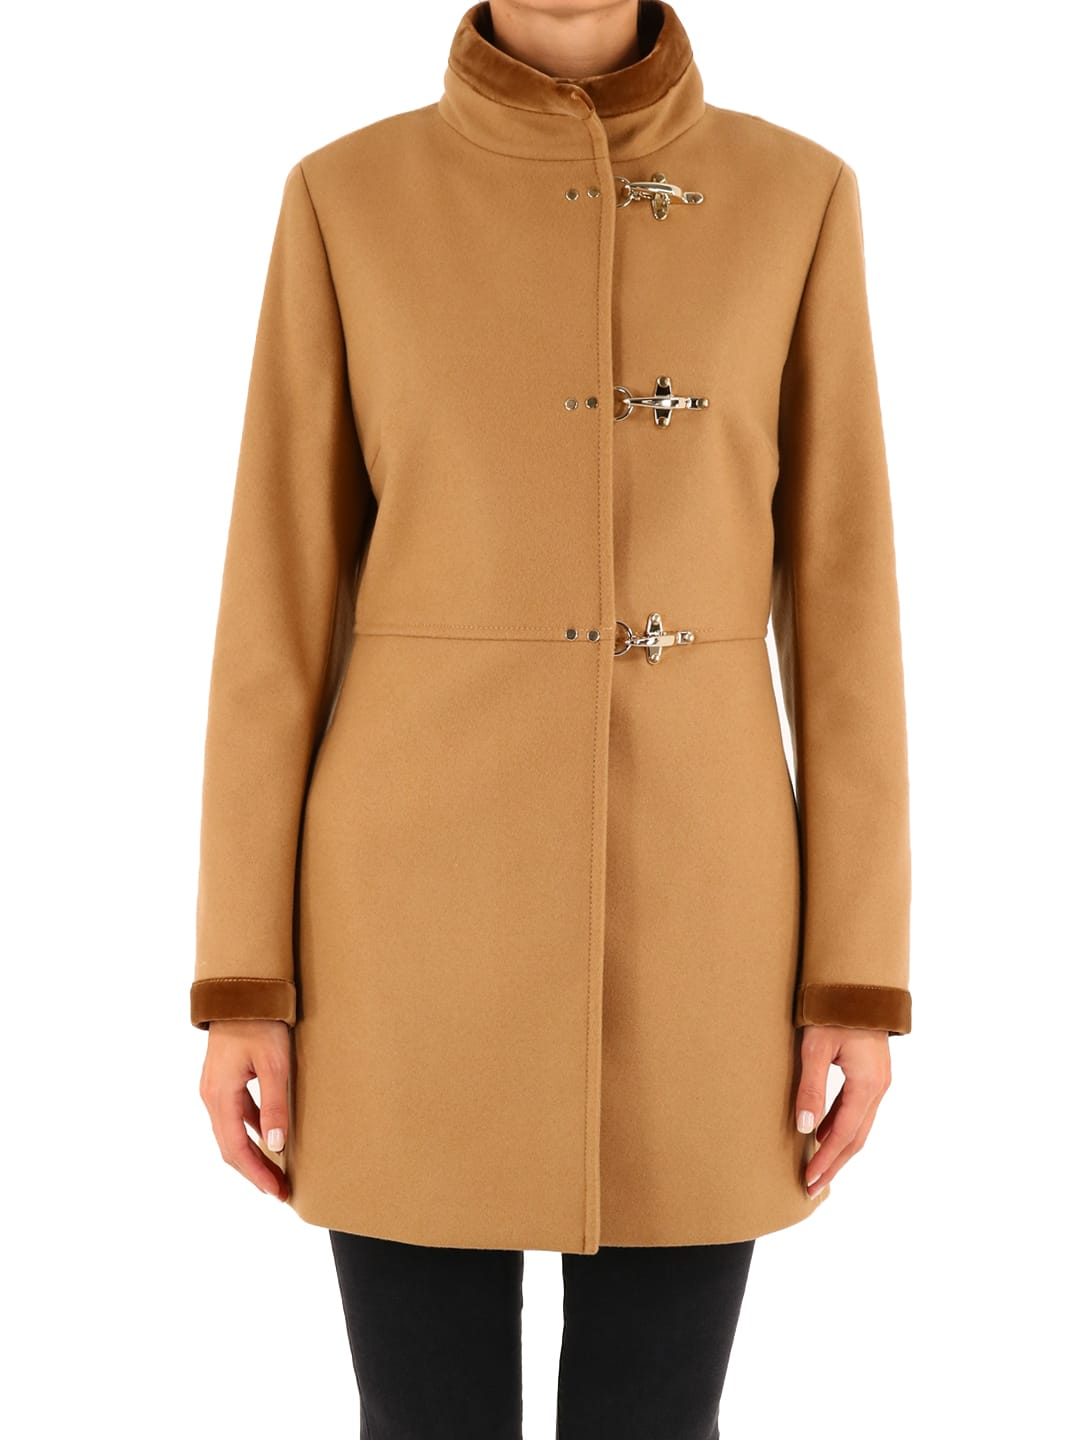 Virginia coat with iconic three-hook closure and welt pockets. Made of virgin wool blend cloth with velvet profiles. The model is 1. 78 tall and wears size S 40IT / 26US / 36FR / 8UKComposition: 80% Virgin Wool, 20% Polyamide